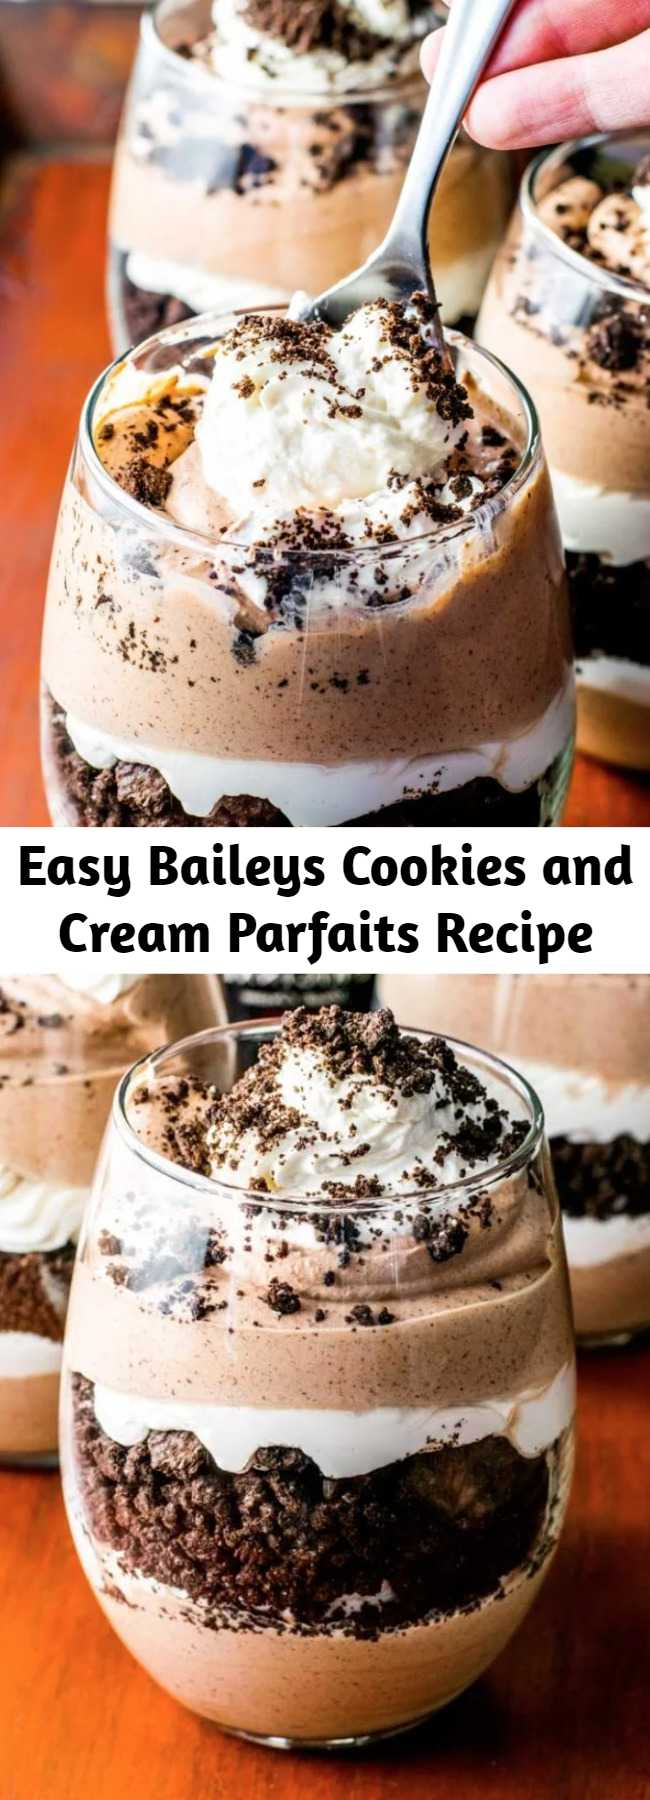 Easy Baileys Cookies and Cream Parfaits Recipe - Layered chocolate and Baileys cream paired with crumbled Oreo cookies. This delicious Baileys parfait is the perfect weekend retreat!